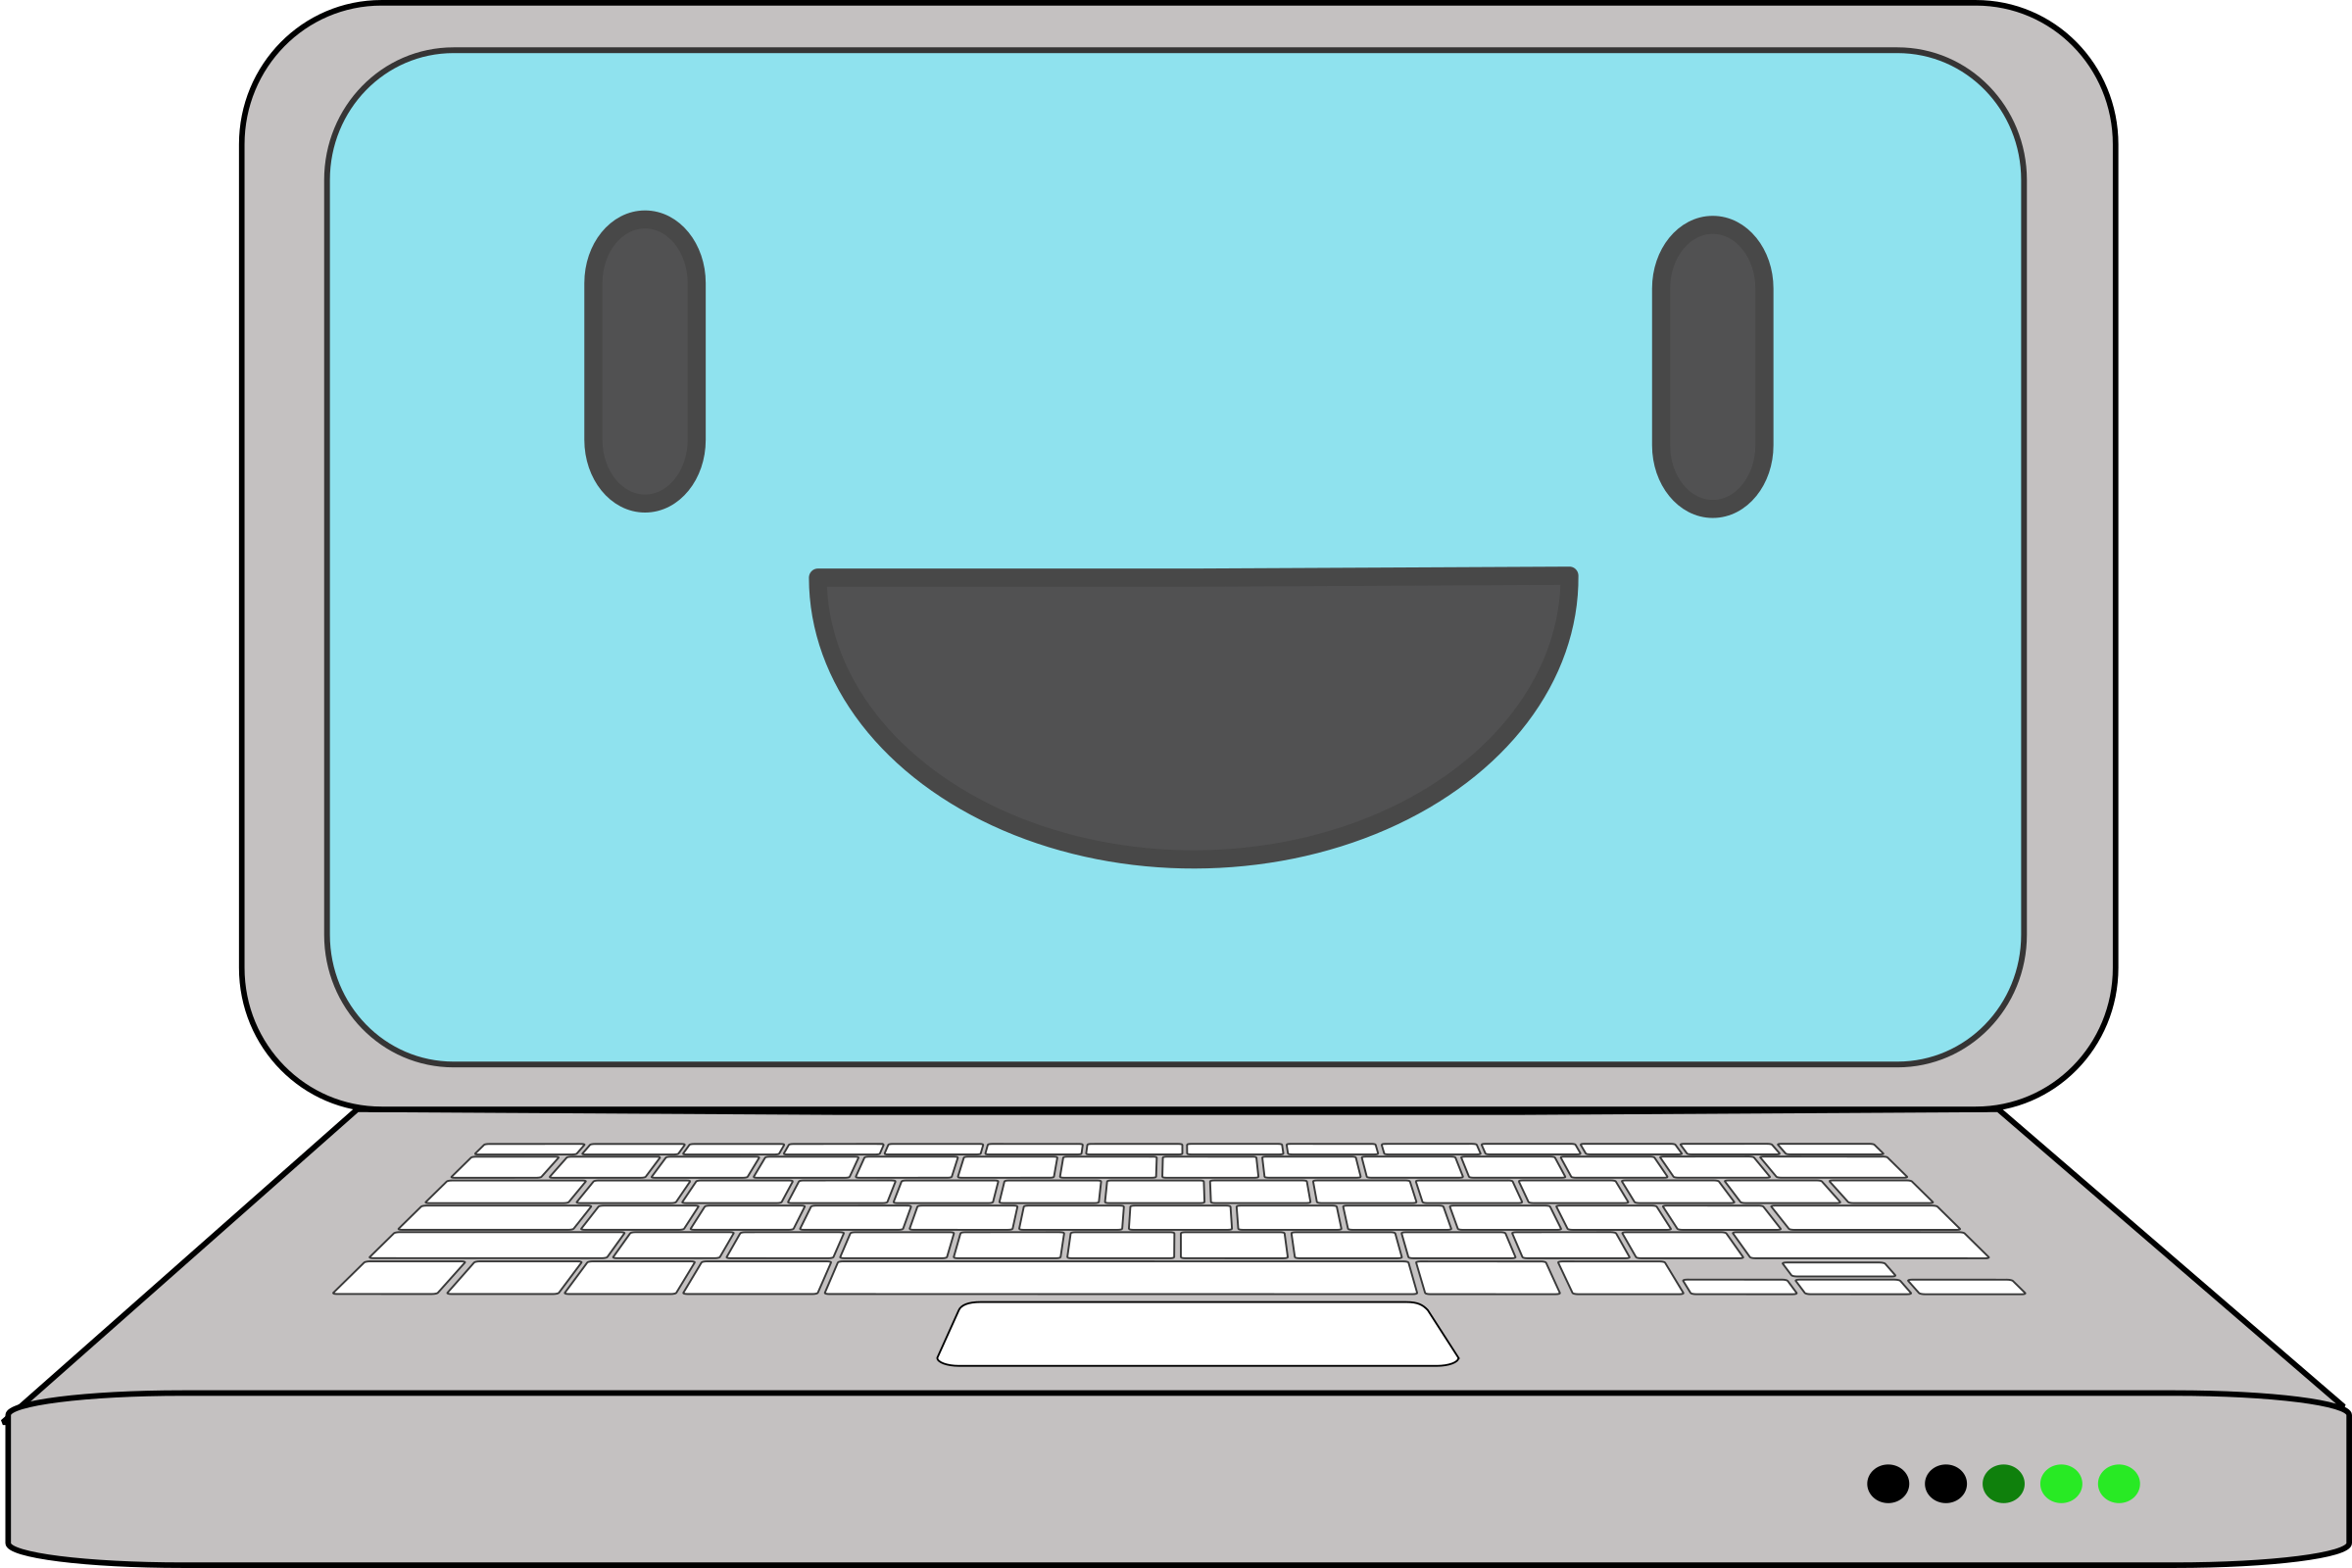 Free Smile Computer Cliparts, Download Free Clip Art, Free.